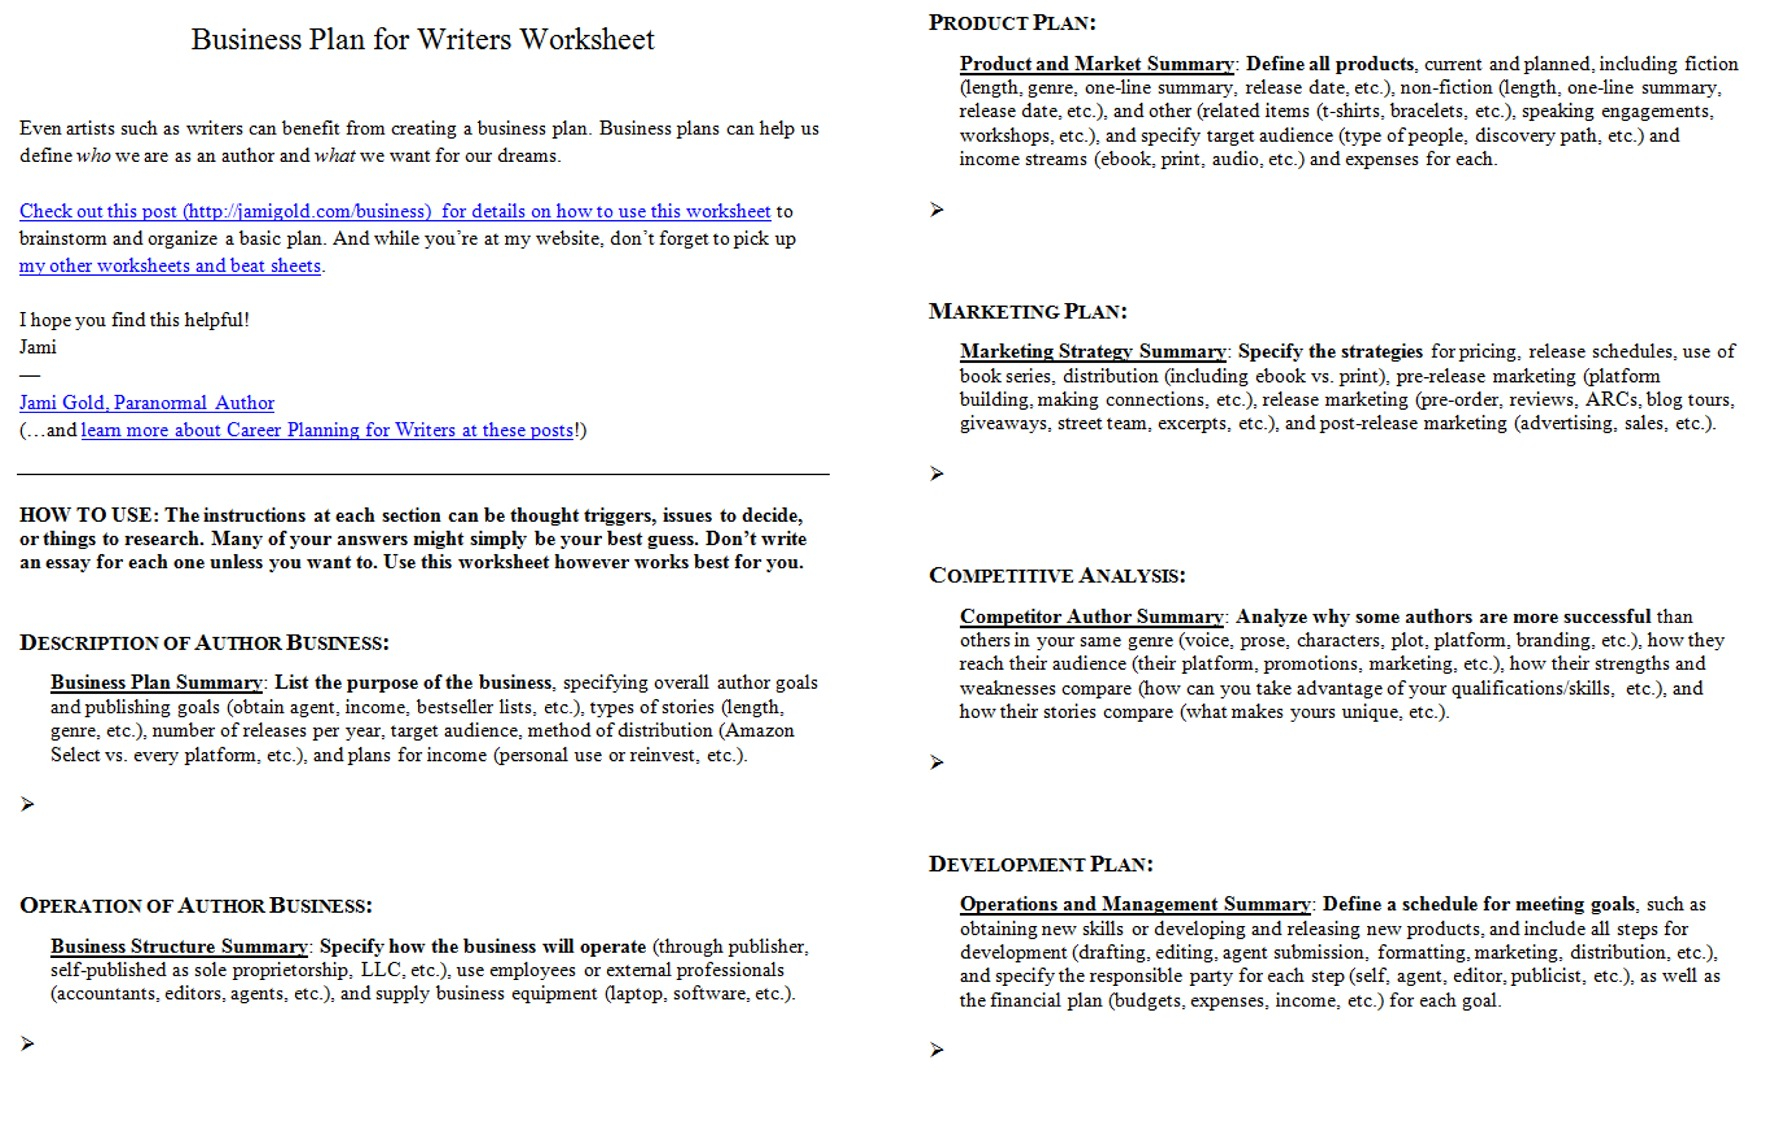 Aldiablosus  Nice Worksheets For Writers  Jami Gold Paranormal Author With Likable Screen Shot Of Both Pages Of The Business Plan For Writers Worksheet With Endearing System Of Equation Word Problems Worksheet Also Plasma Membrane Worksheet In Addition Fraction On A Number Line Worksheet And The Virtual Cell Worksheet Answers As Well As Irs Eic Worksheet Additionally Motion And Speed Worksheet From Jamigoldcom With Aldiablosus  Likable Worksheets For Writers  Jami Gold Paranormal Author With Endearing Screen Shot Of Both Pages Of The Business Plan For Writers Worksheet And Nice System Of Equation Word Problems Worksheet Also Plasma Membrane Worksheet In Addition Fraction On A Number Line Worksheet From Jamigoldcom